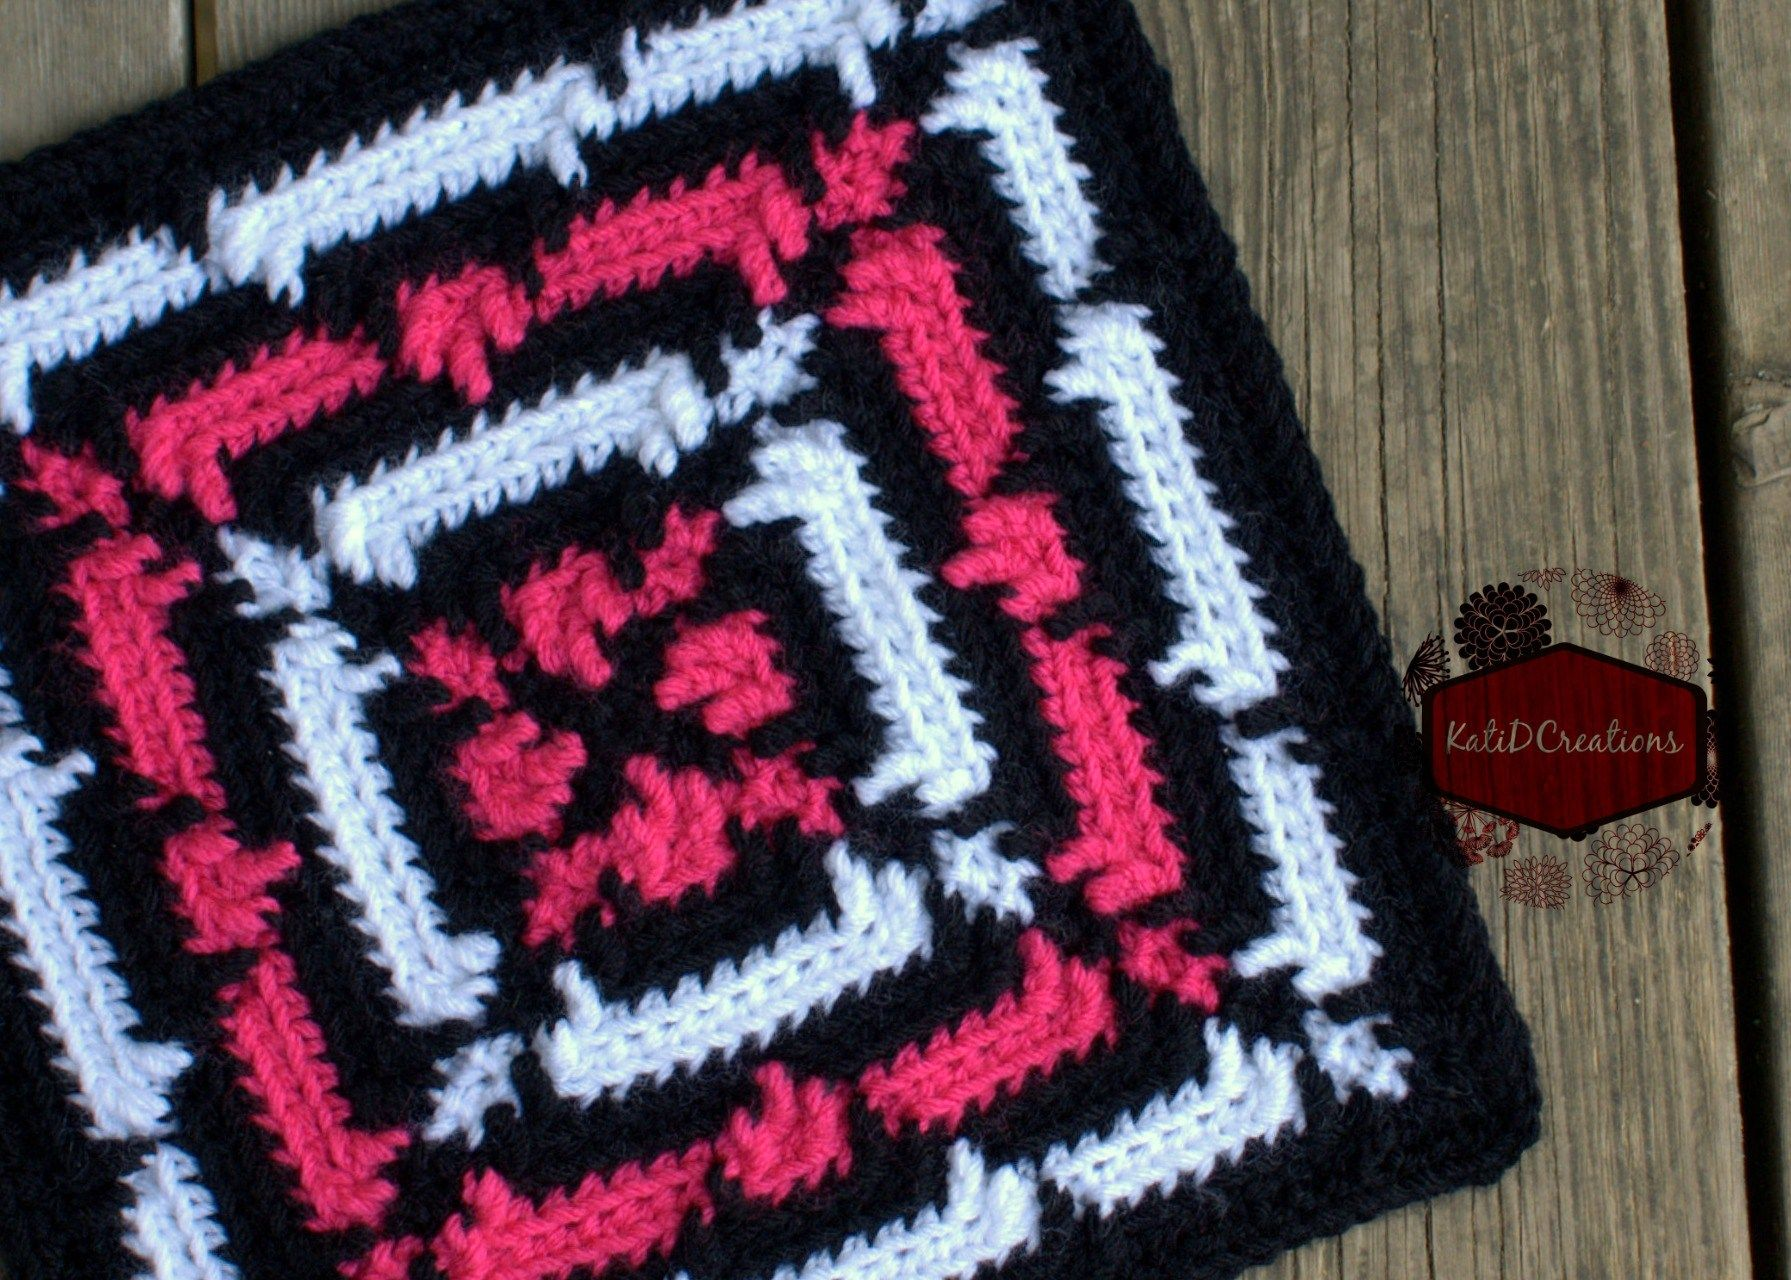 X marks the spot free 12 crochet square pattern from x marks the spot free 12 crochet square pattern from katidcreations bankloansurffo Image collections